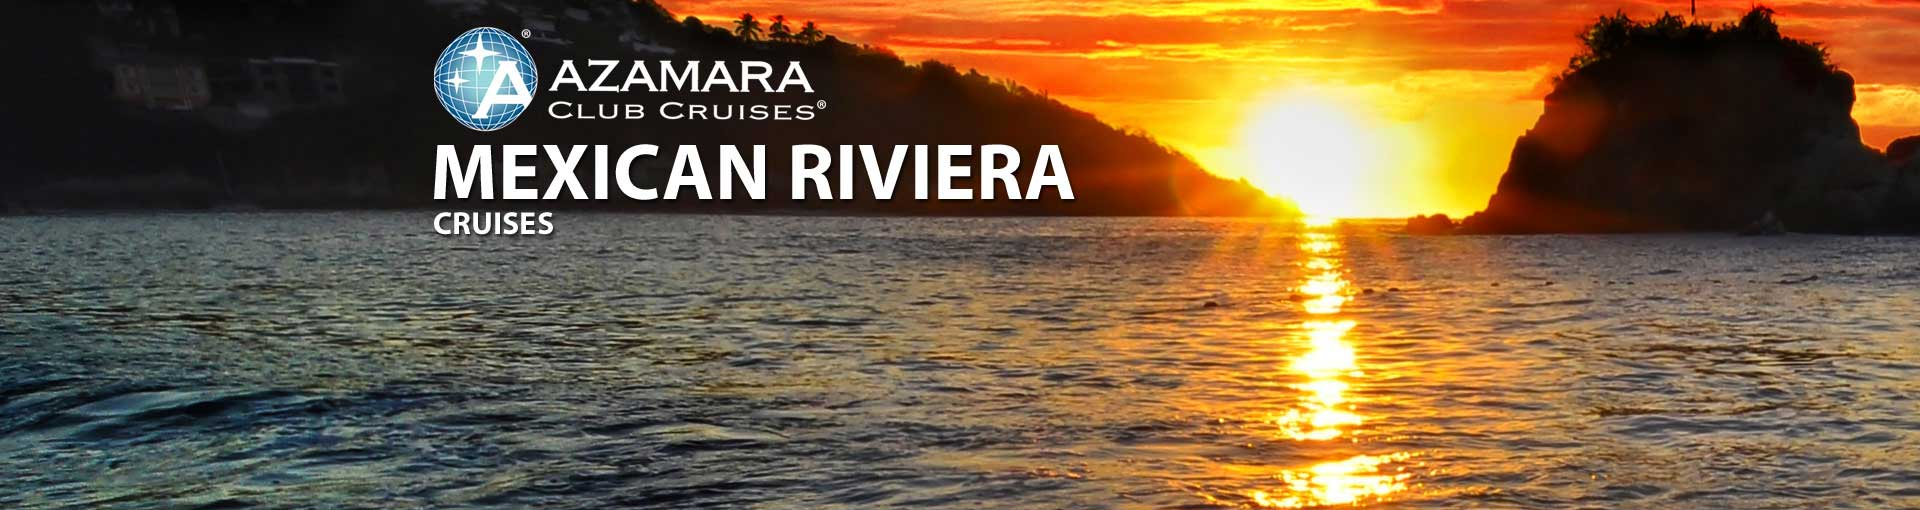 Azamara Club Cruises Mexican Riviera Cruises